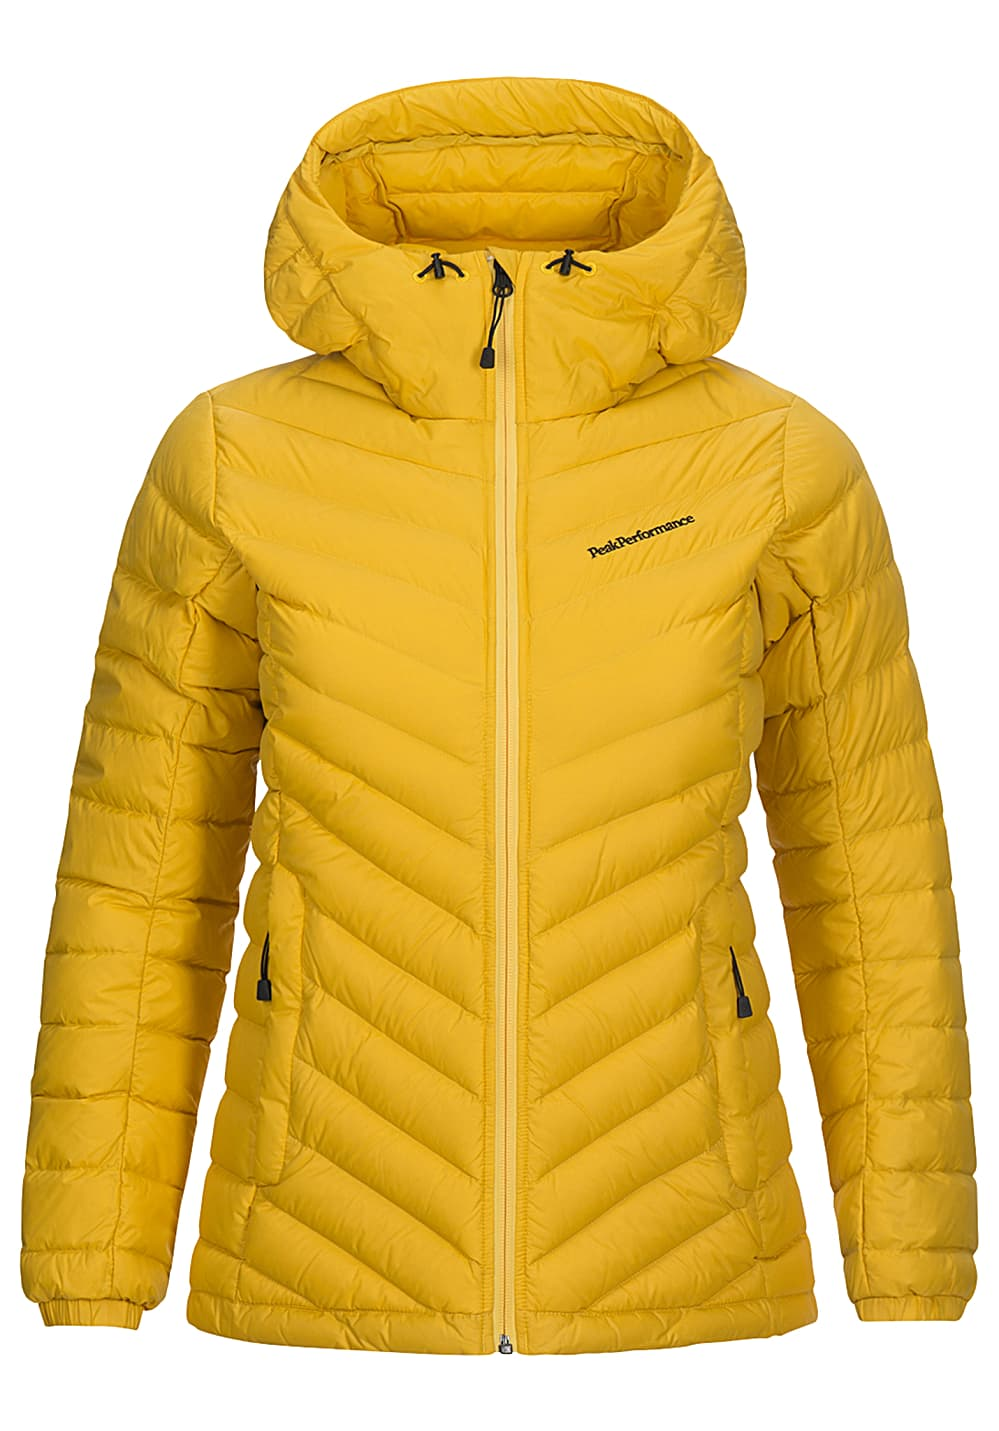 PEAK PERFORMANCE Frost Twill Outdoorjacke für Damen Gelb